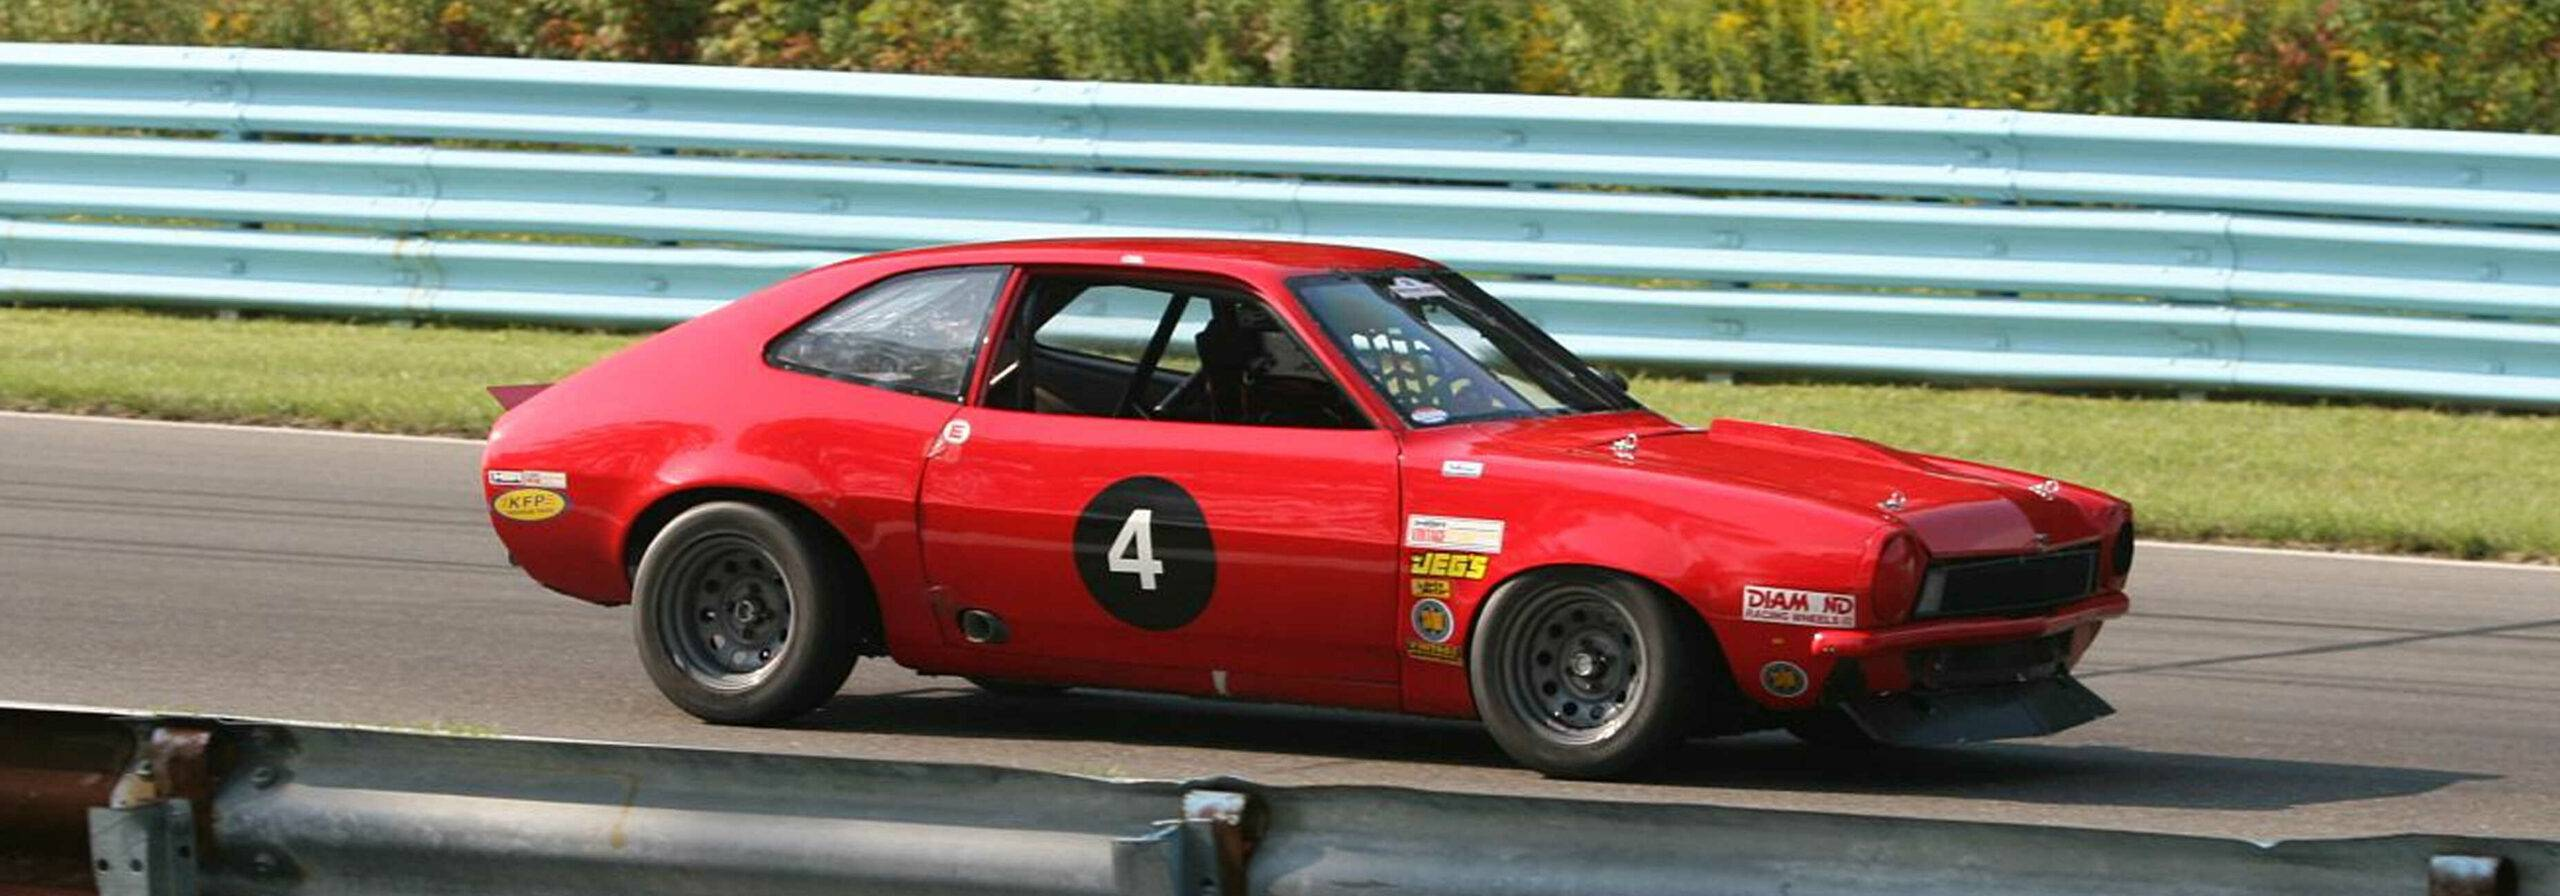 Ford's Pinto car